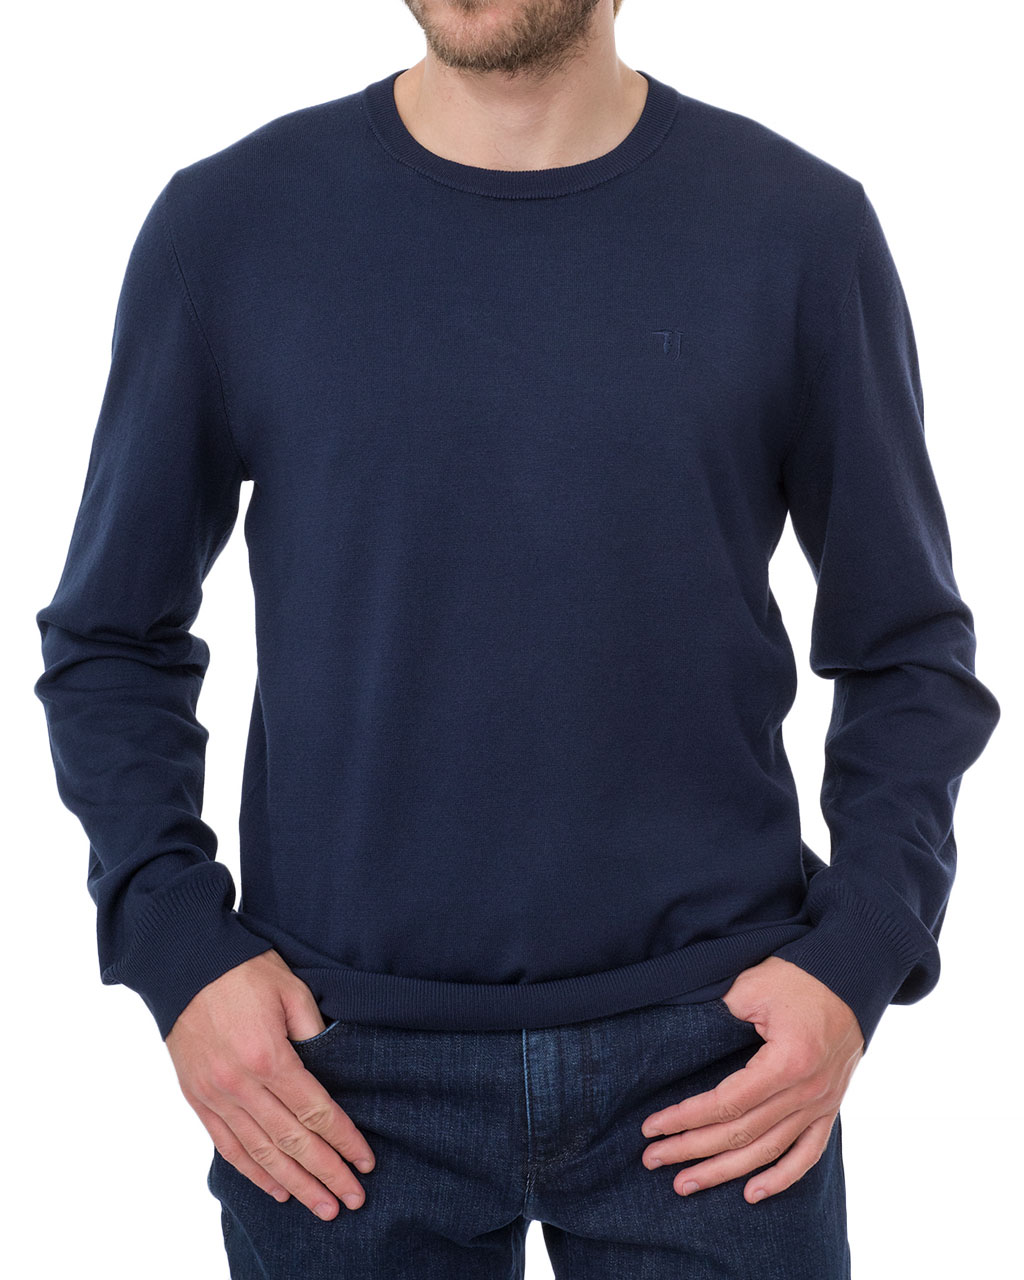 Men's jumper 52M00231-OF000433-U290/19-20 (1)